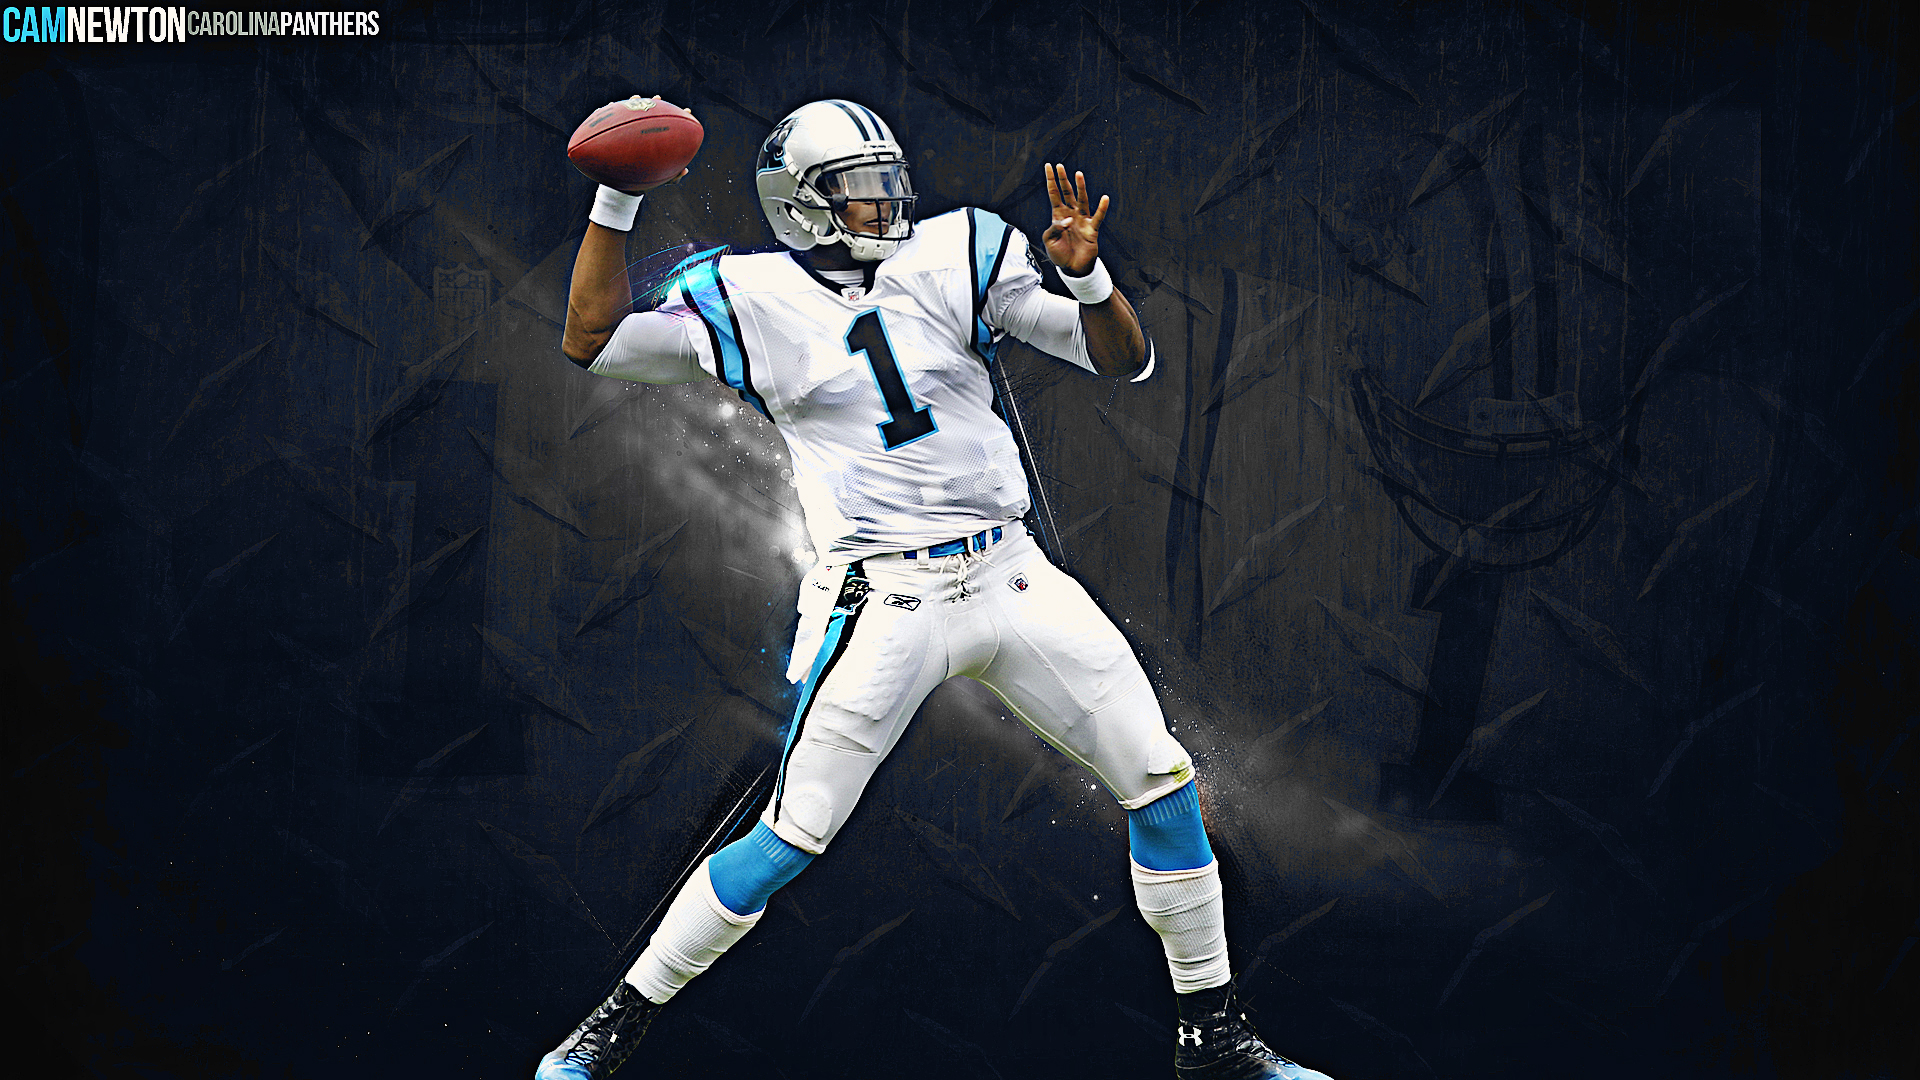 Cam Newton Wallpapers High Quality Download Free d0g0D32v